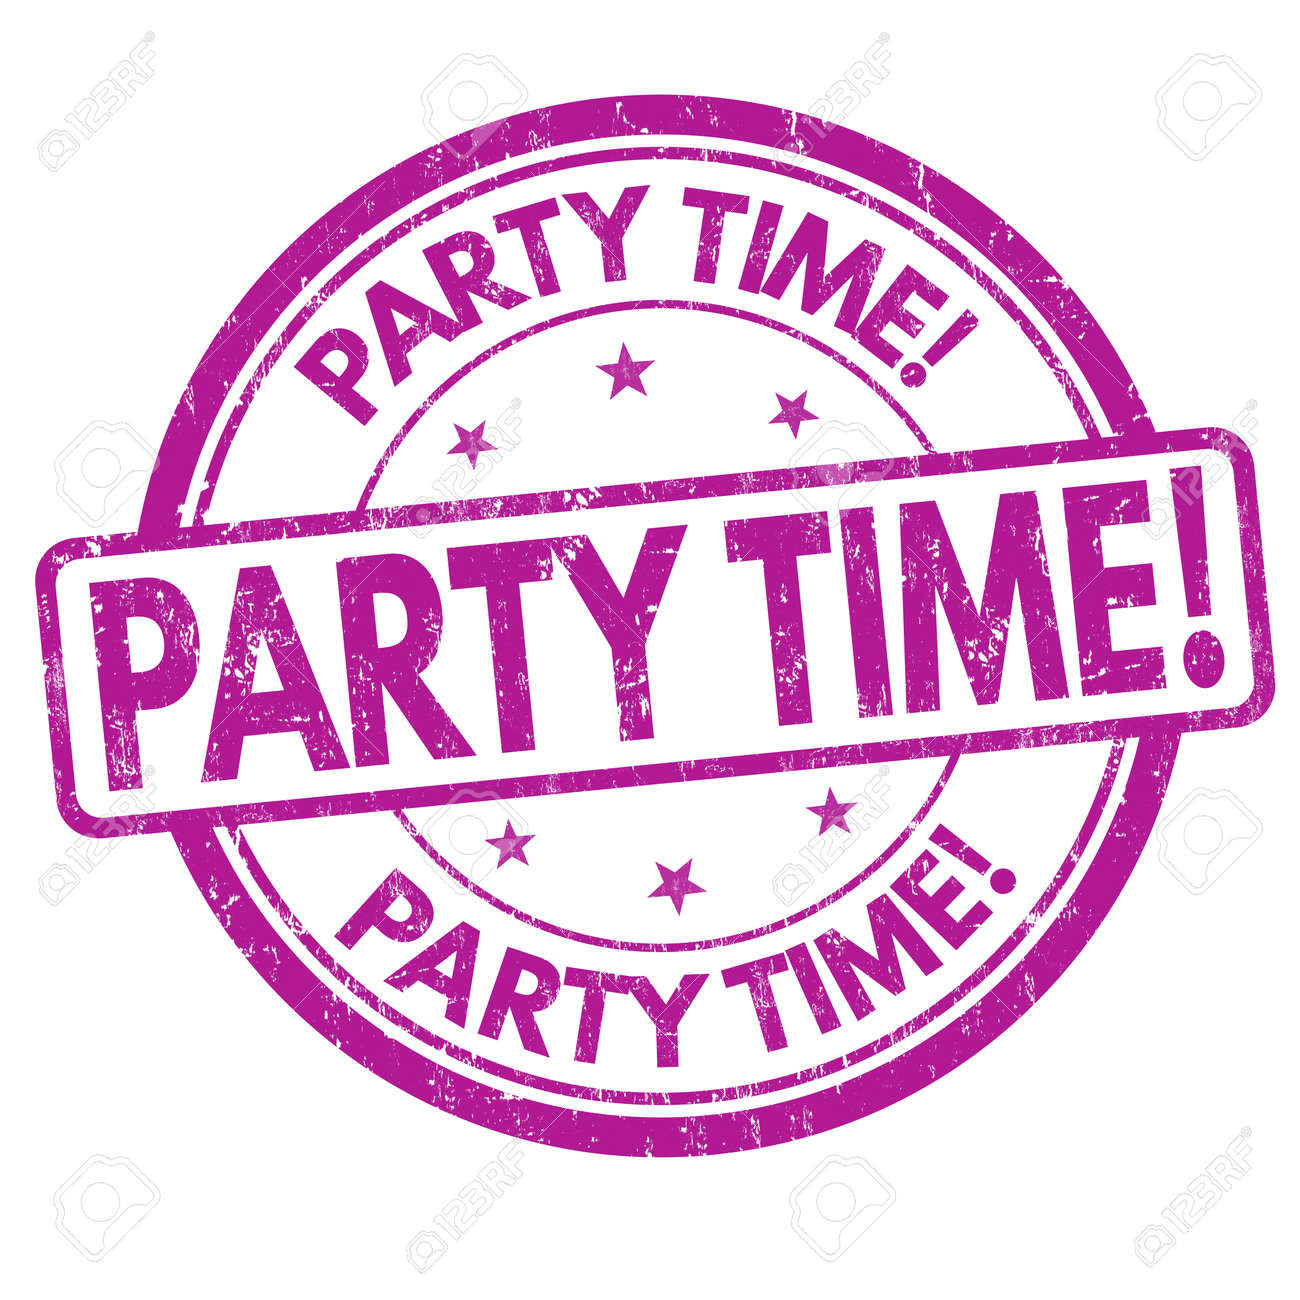 Party Time Party Time Grunge Rubber Stamp On White Background